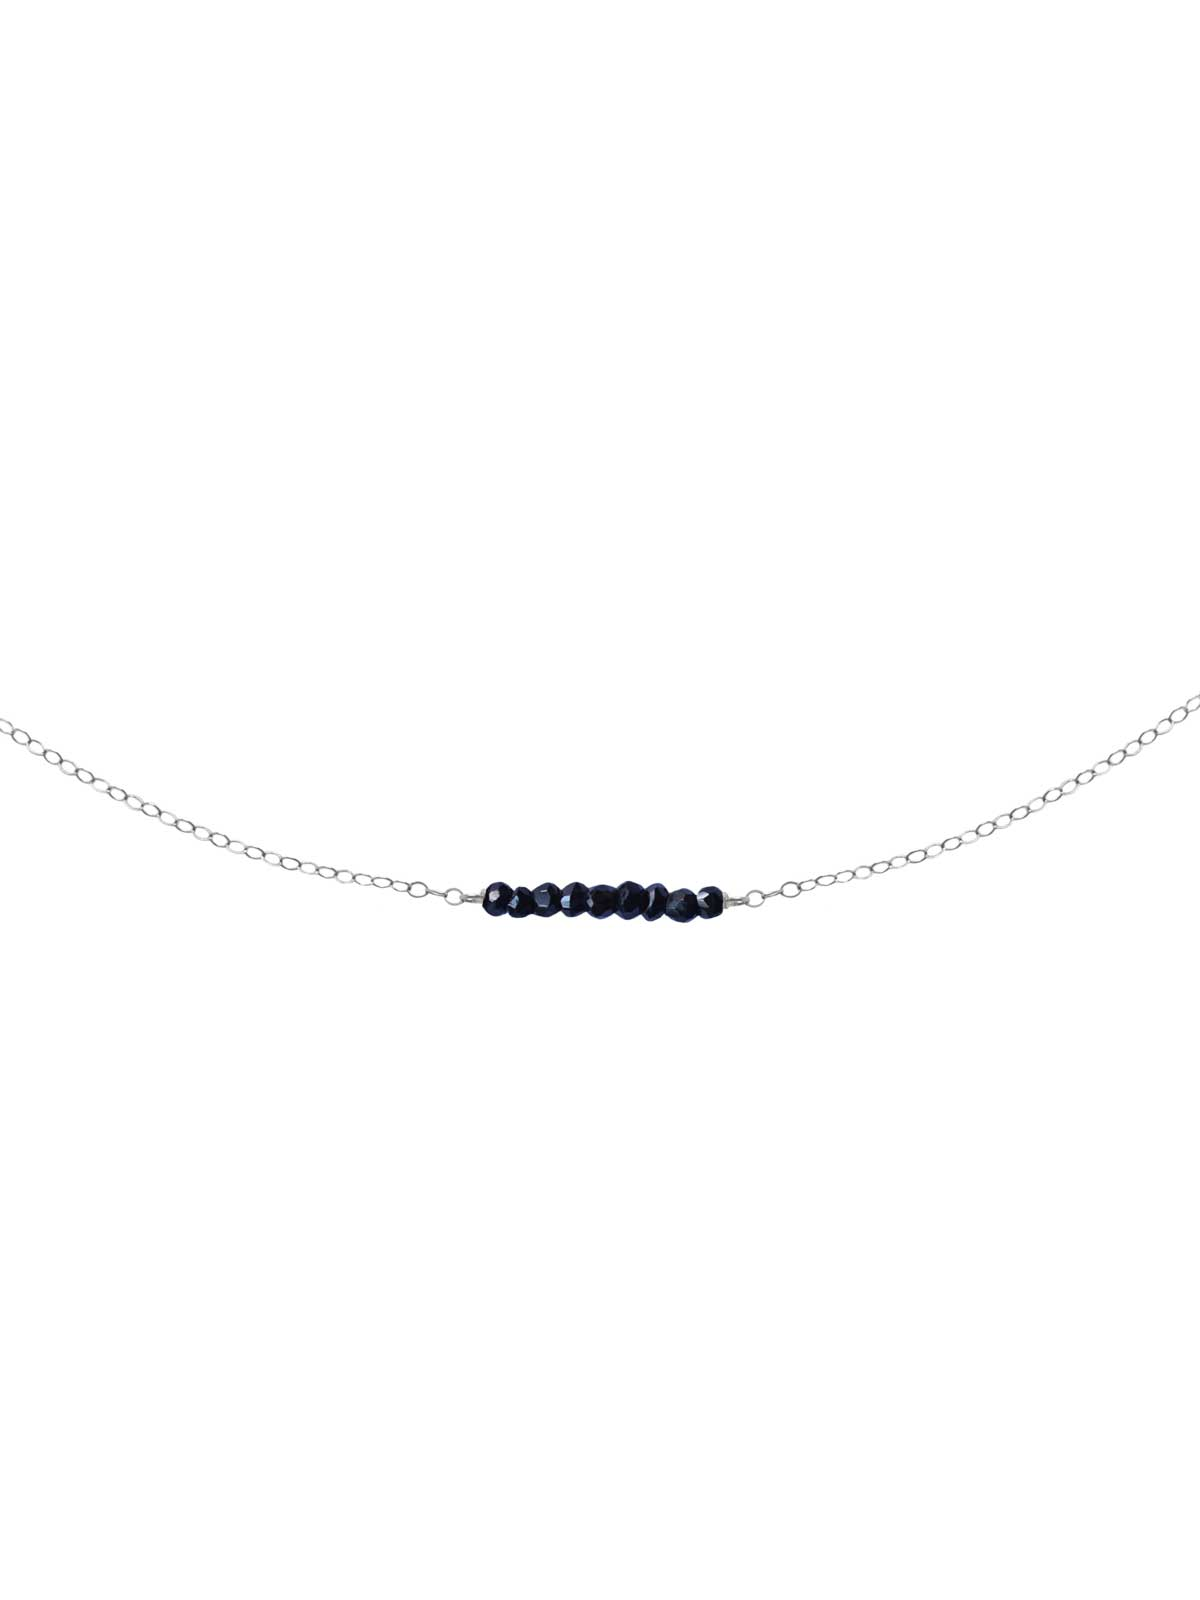 Necklace Sterling Silver chain faceted Black Spinel